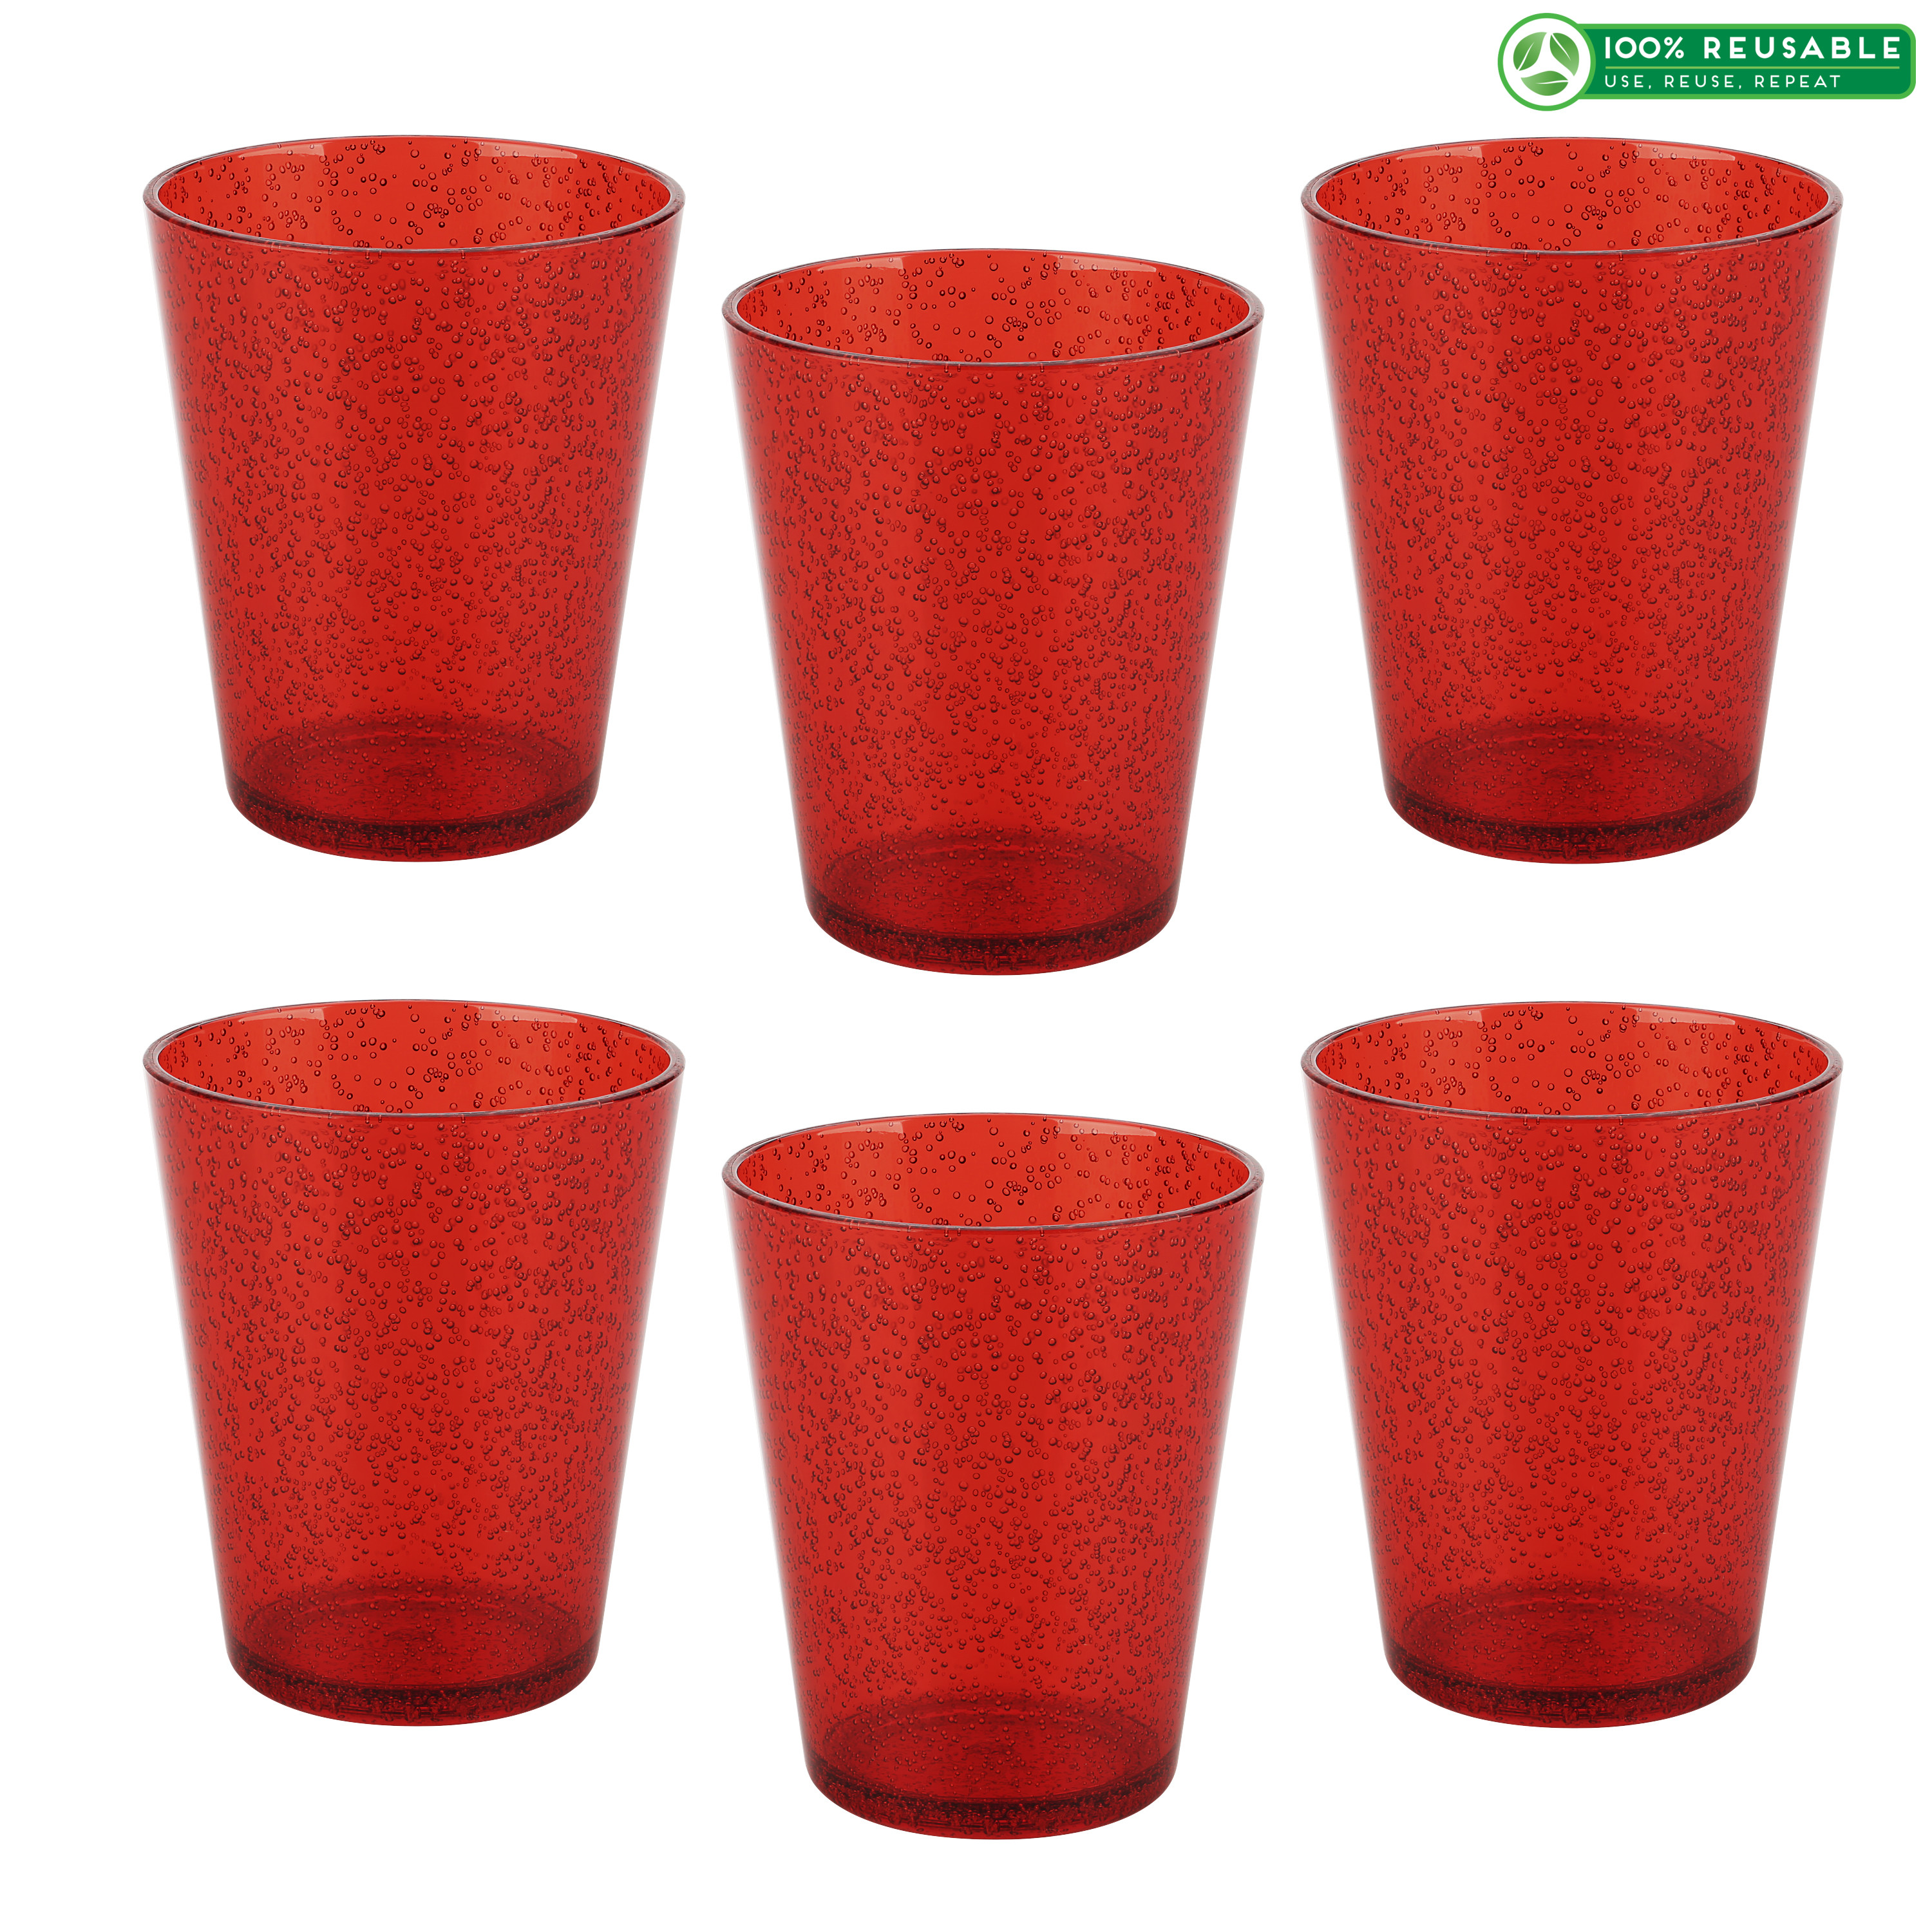 Spritz 16 ounce Old-Fashion Glass, Red slideshow image 1